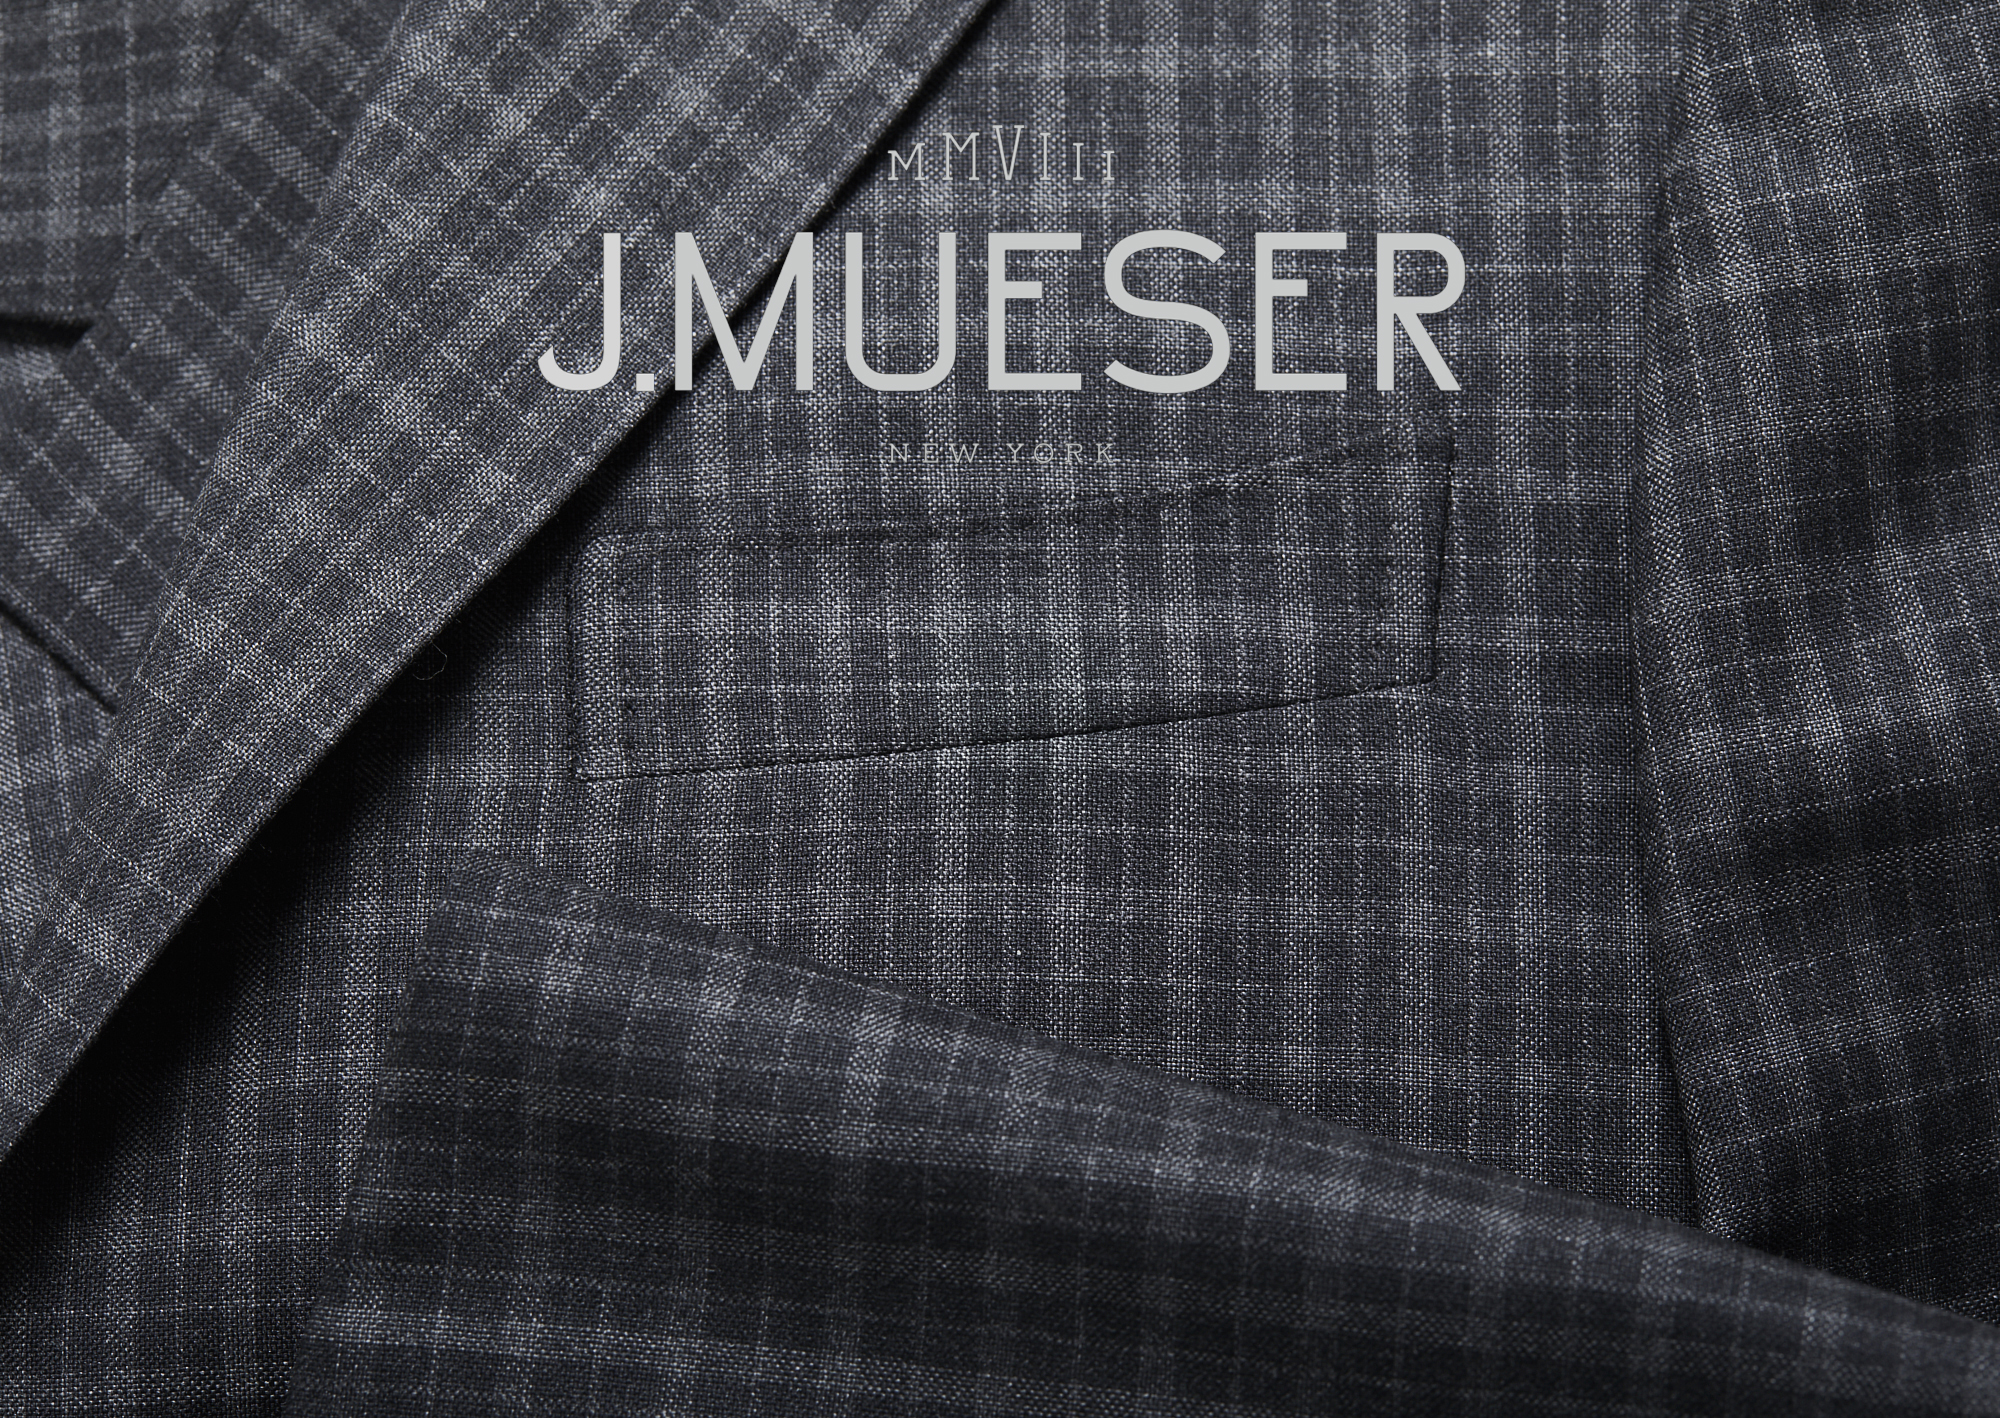 Grey_Plaid_Suit_094_logo.jpg